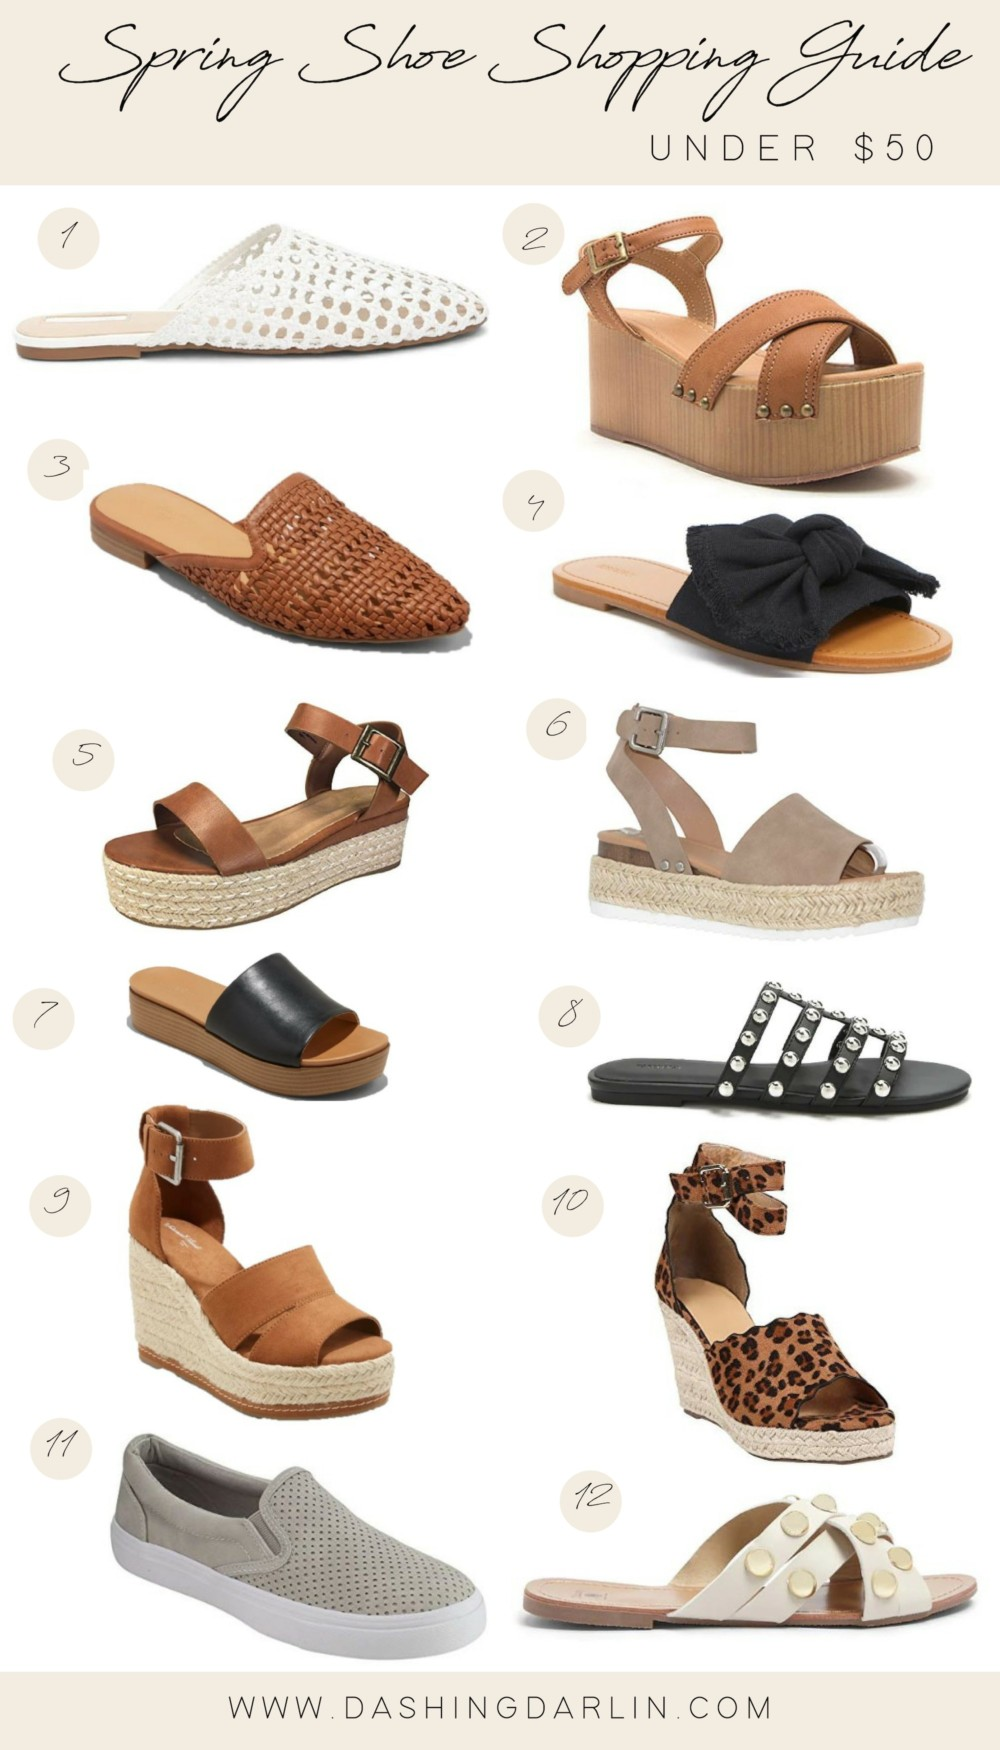 SPRING SHOE SHOPPING GUIDE UNDER $50